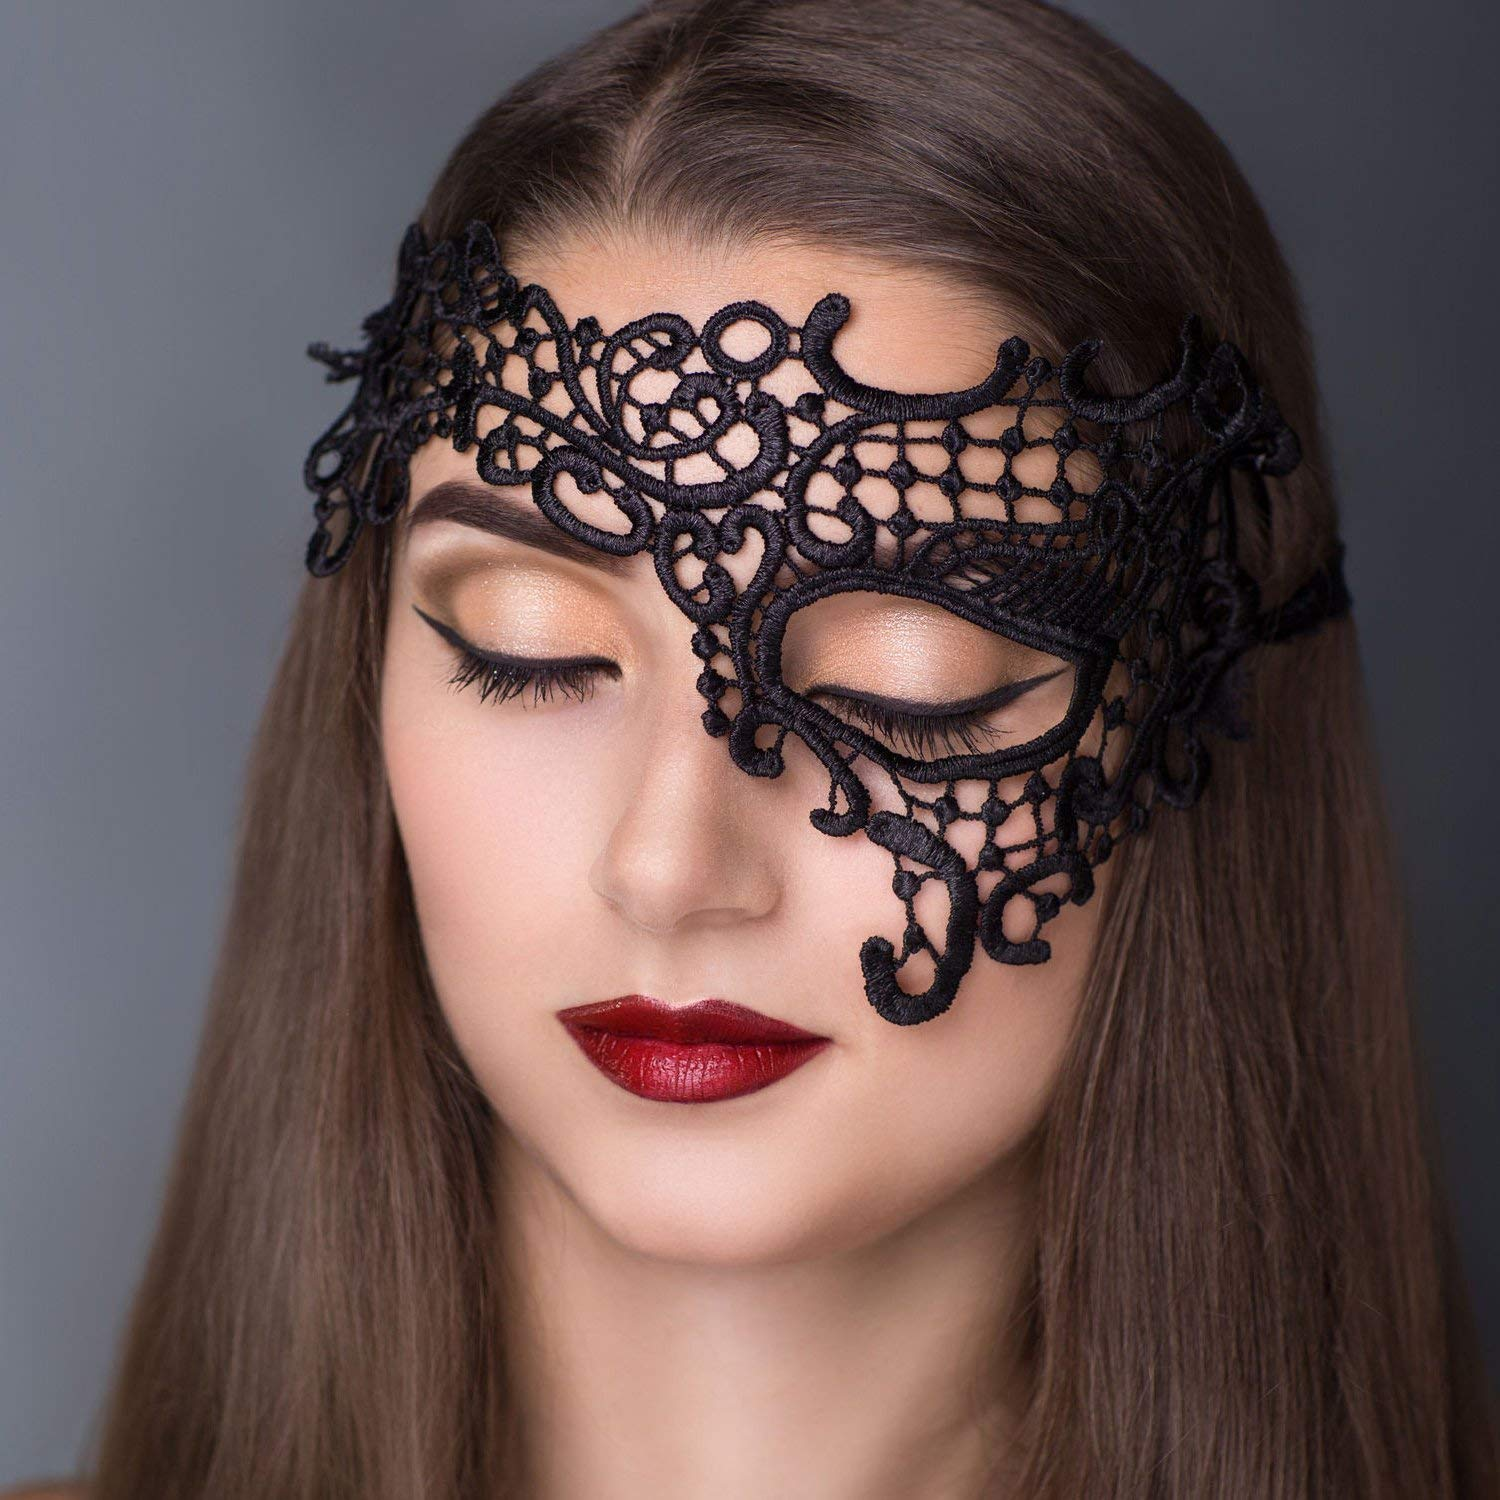 Pin on Halloween Women Collections